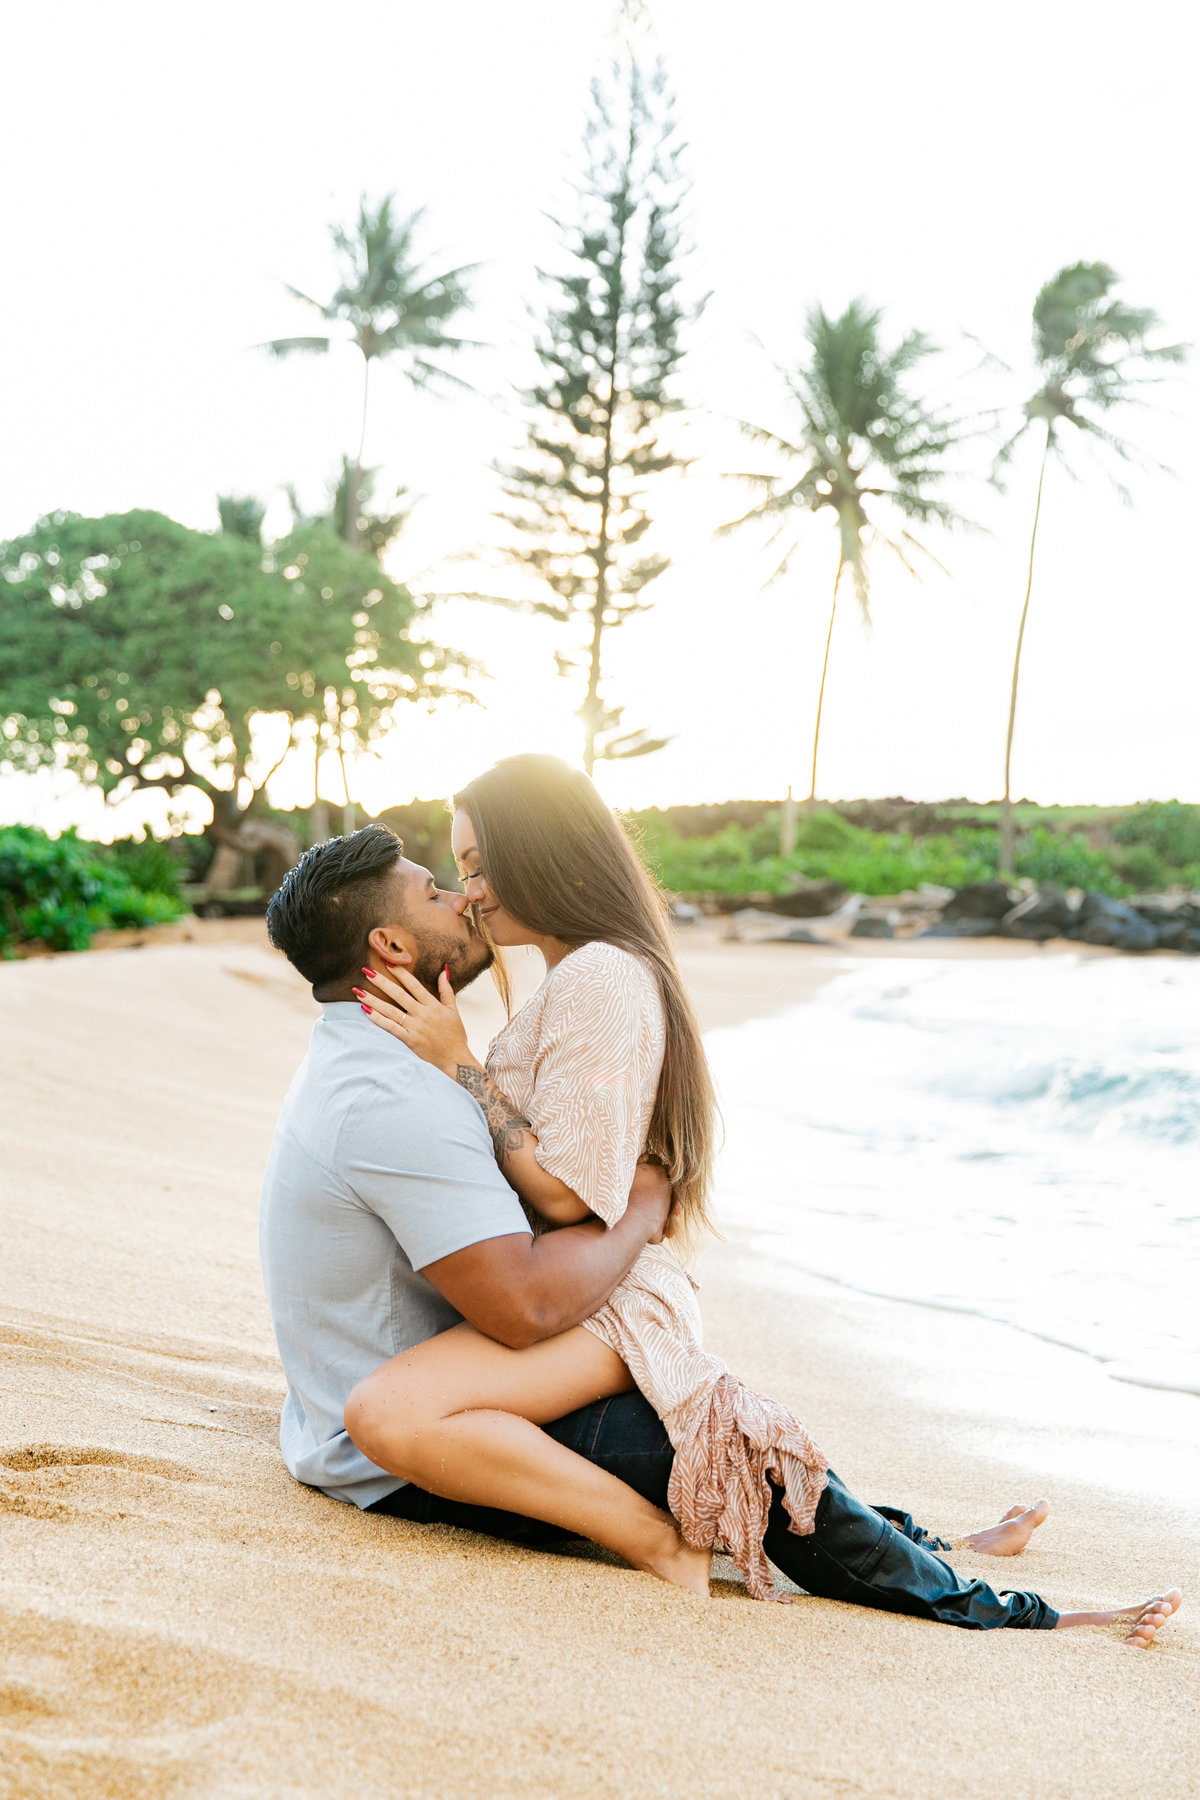 Karlie Colleen Photography - Kauai Hawaii Wedding Photography - Sydney & BJ -97